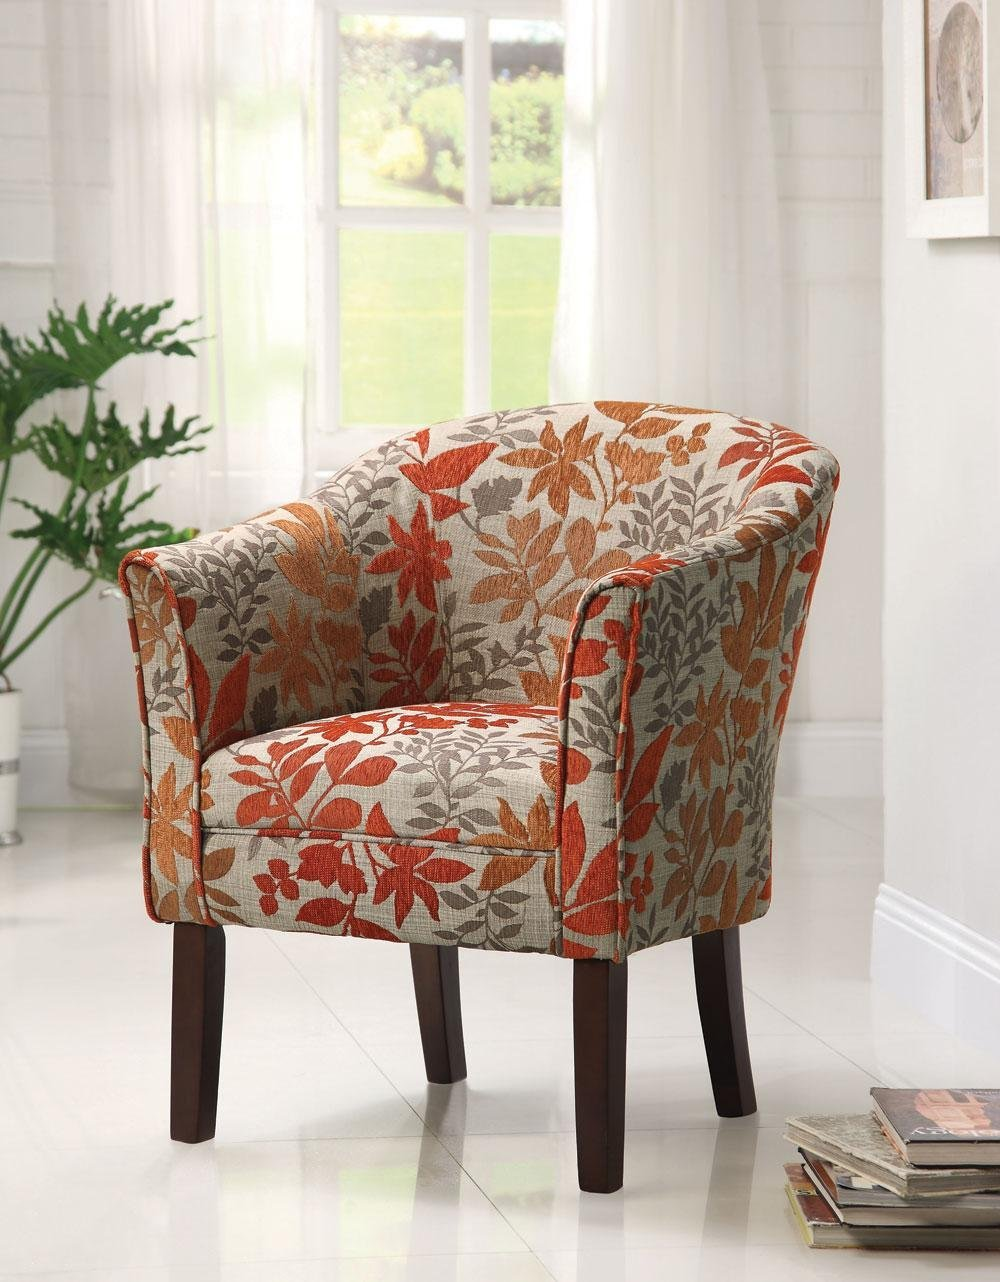 Cool Accent Chairs With Orange Leaf Motif Plus Wooden Leg And Comfy Back Arms